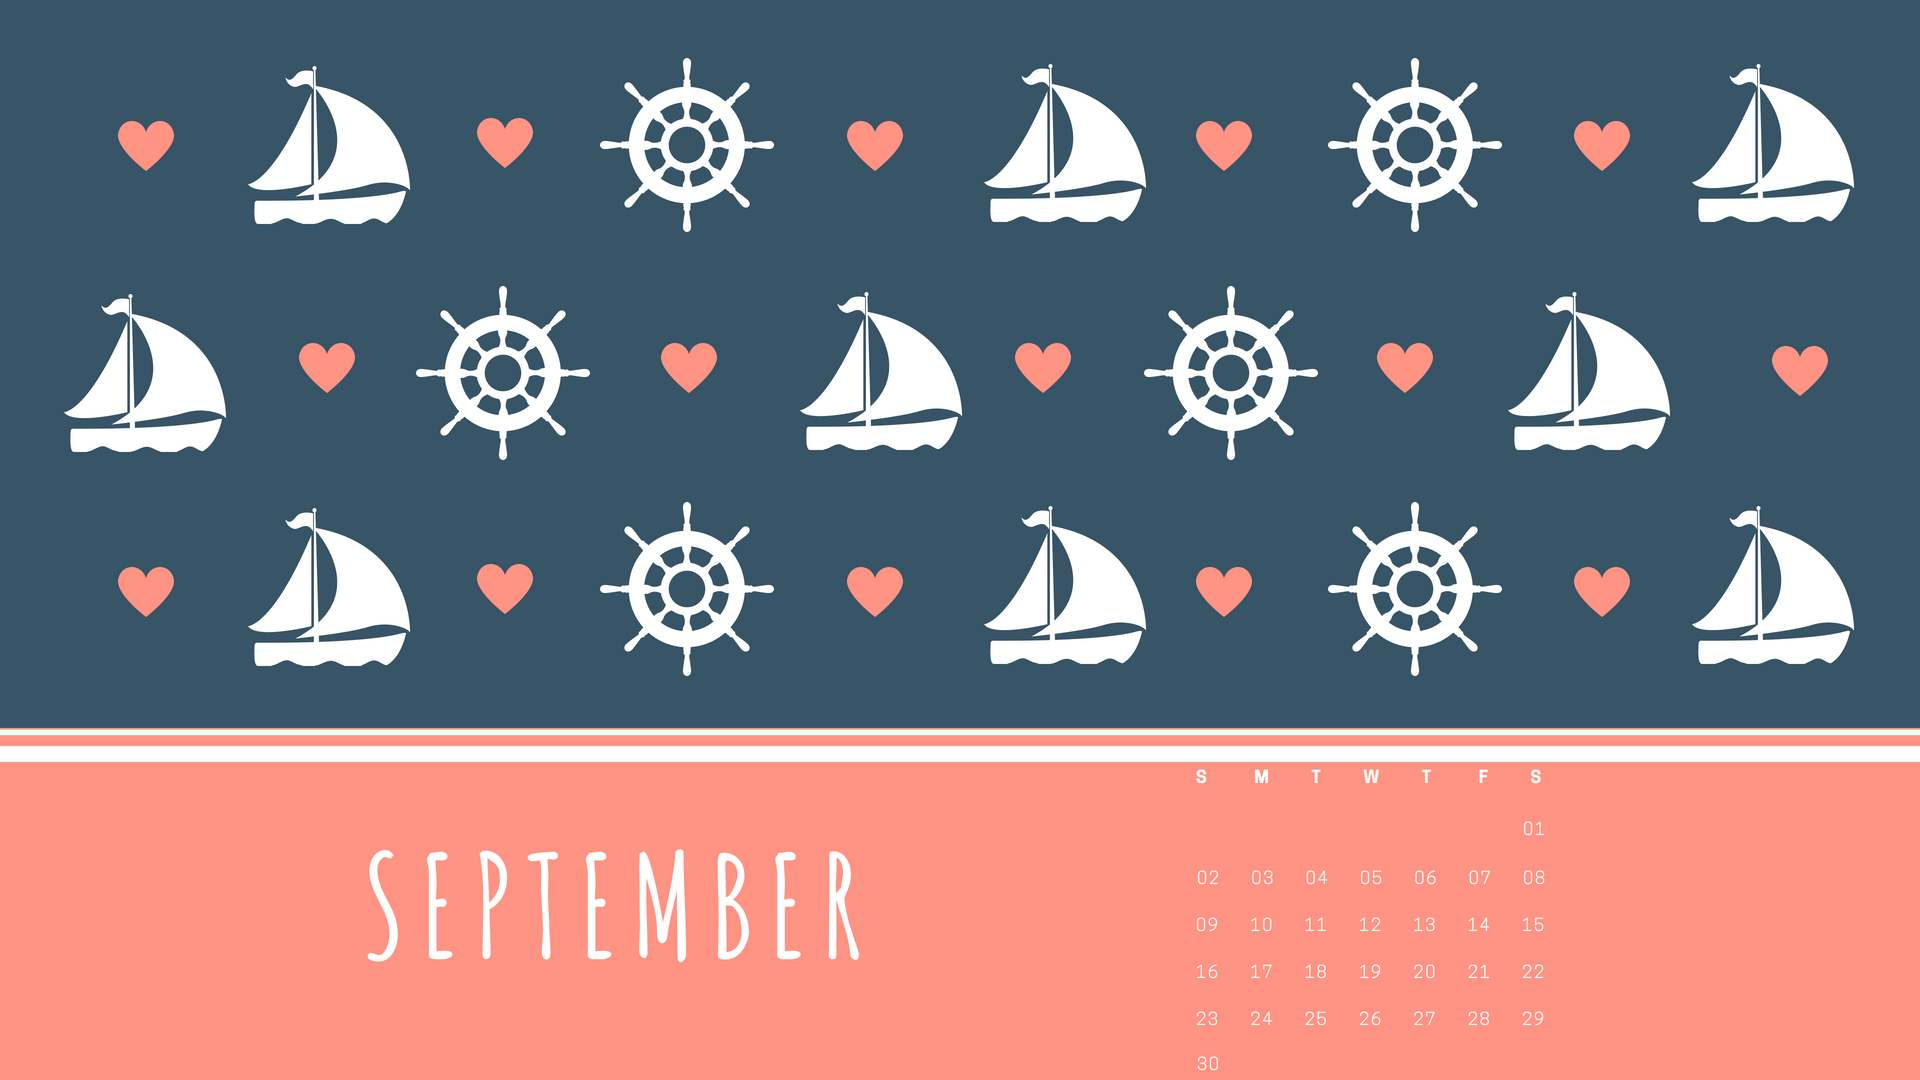 September 2018 PC Calendar Wallpaper